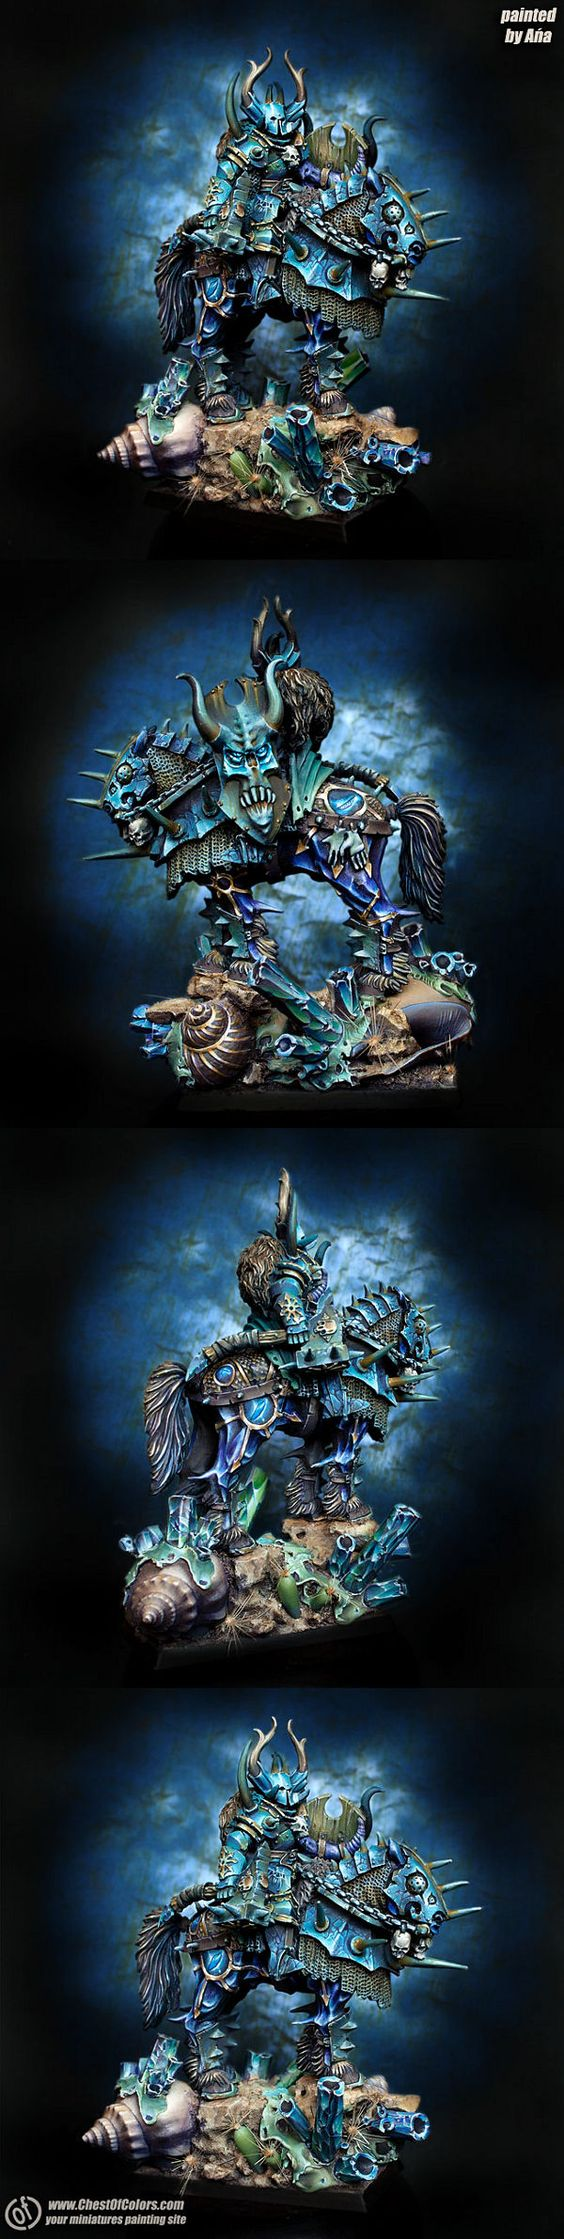 Chaos Lord of Tzeentch on a Chaos Steed